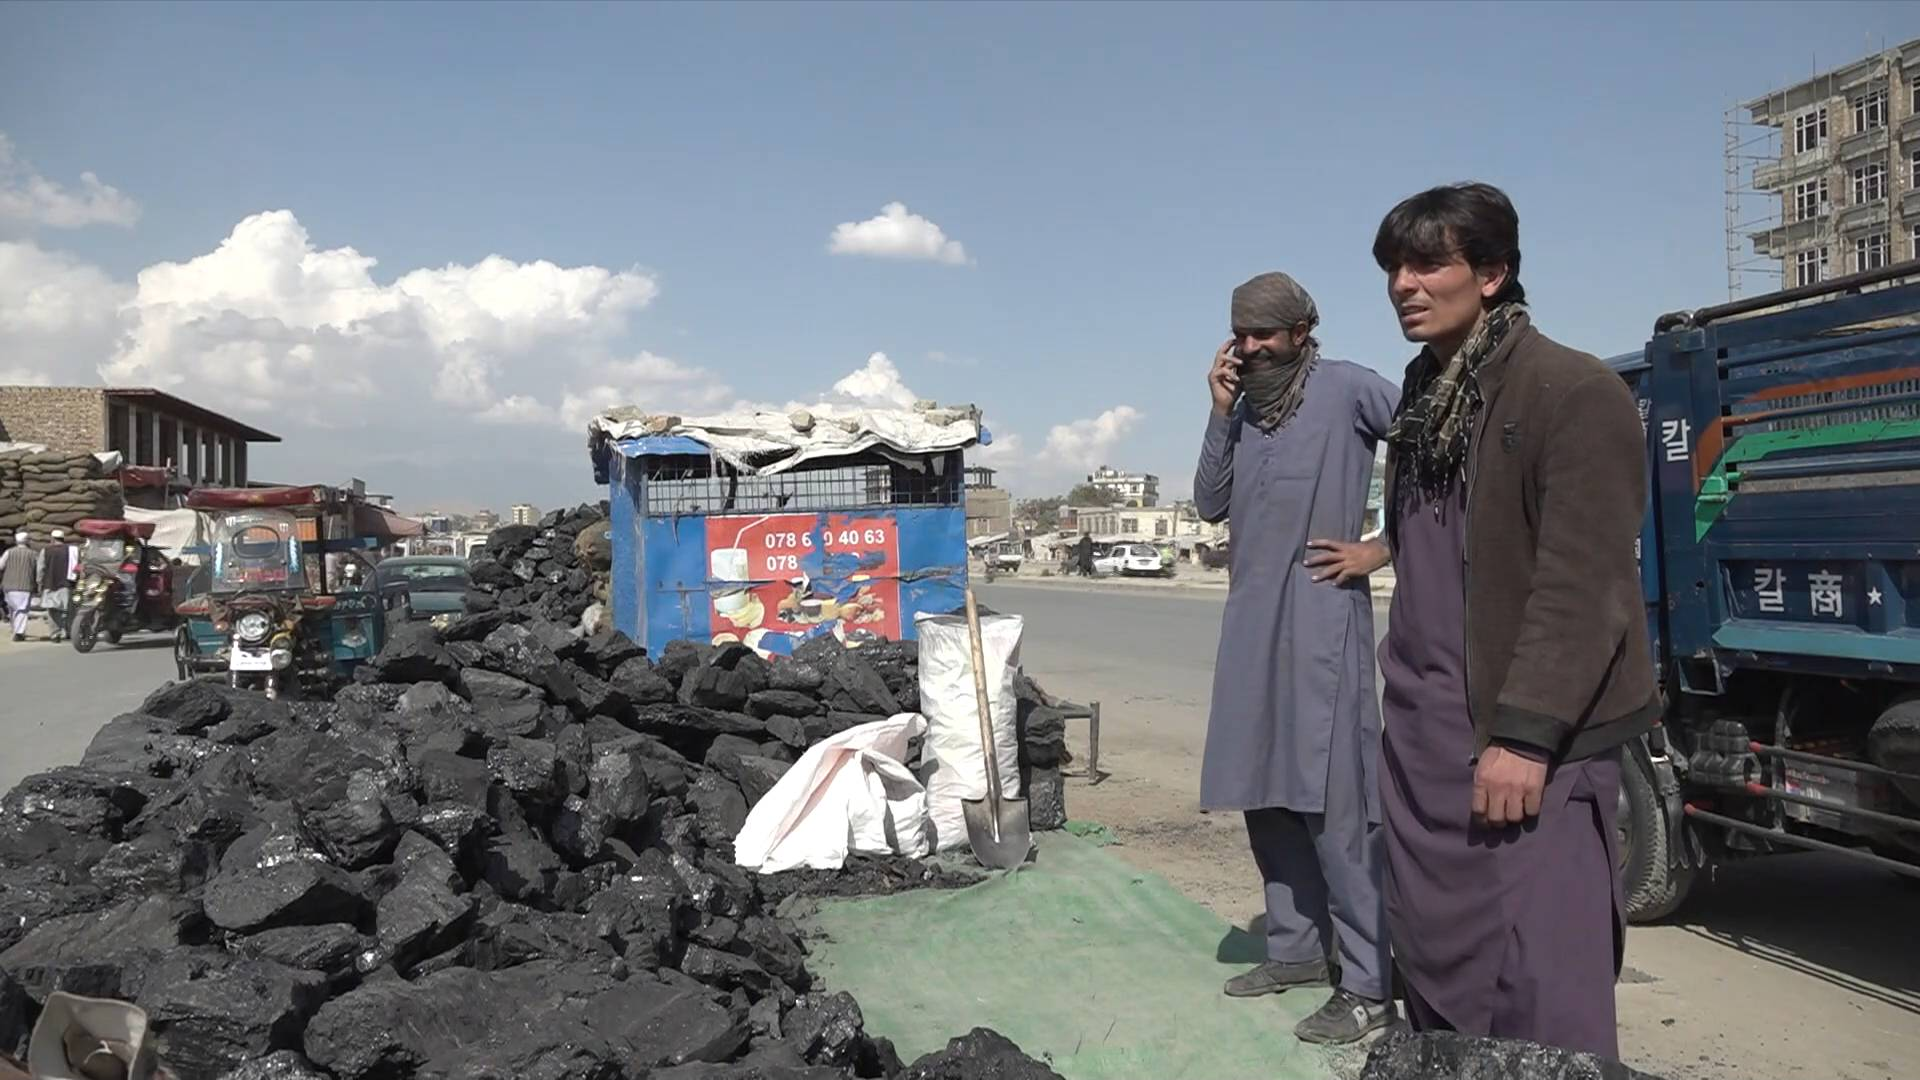 GLOBALink   Afghans struggle to stay warm in incoming winter amid price hike of daily necessities